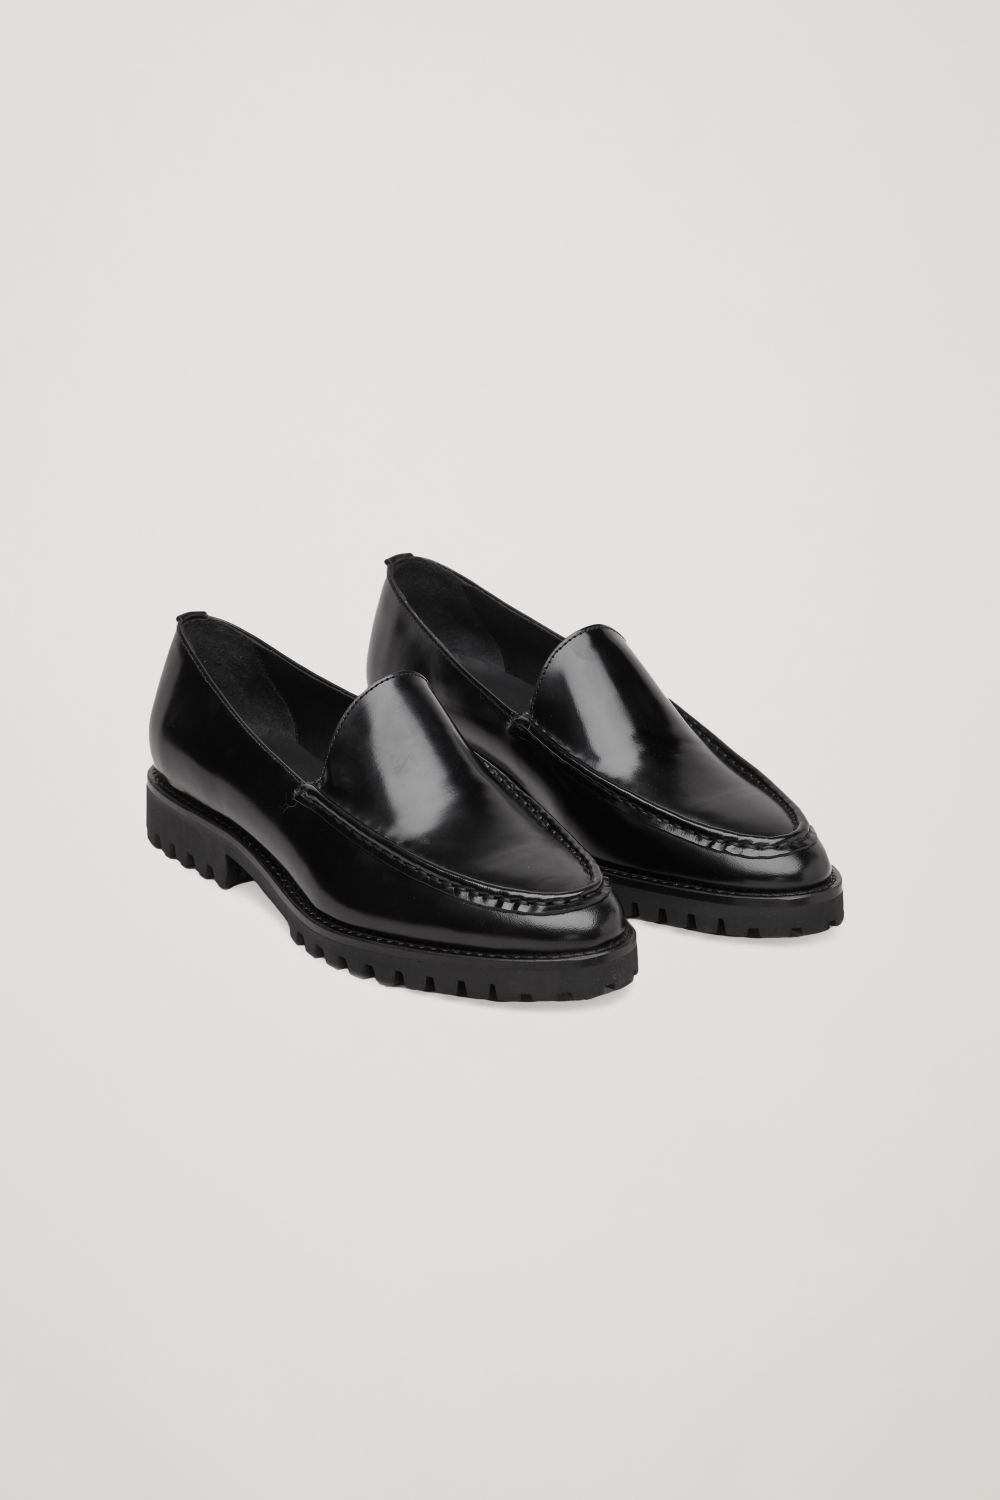 코스 COS RIDGED-SOLE LEATHER LOAFERS,Black